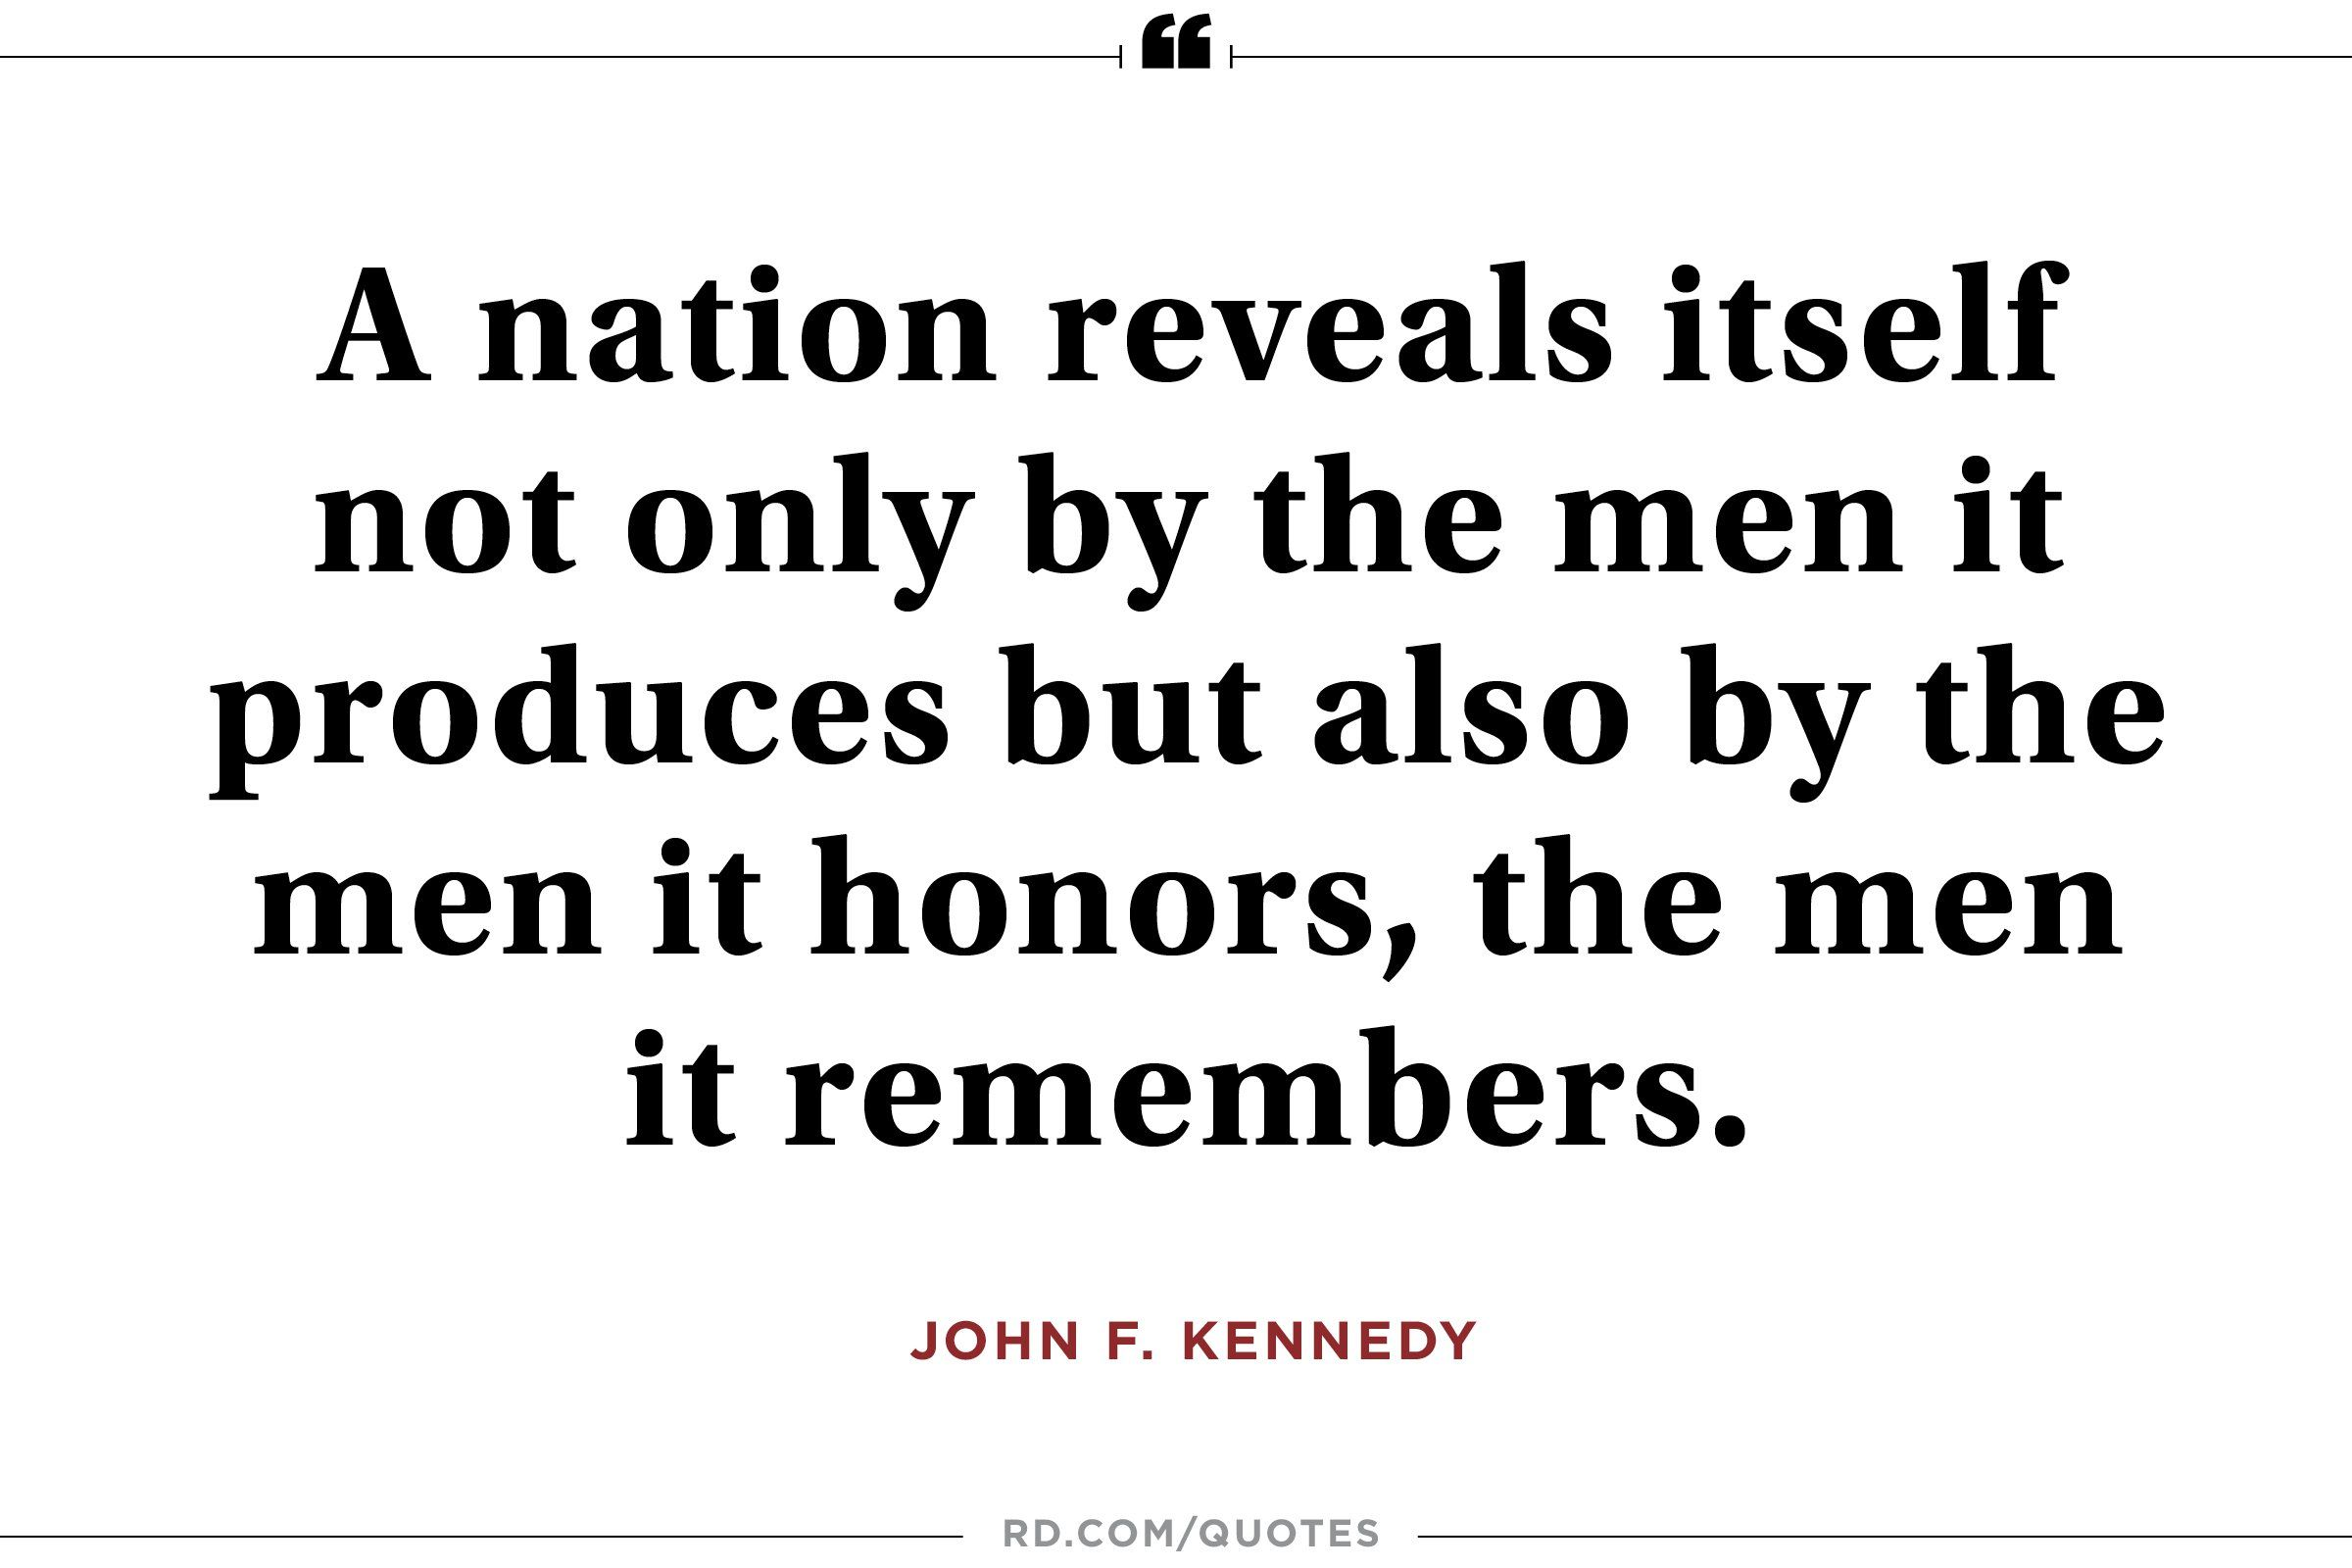 11 Quotes From President John F Kennedy That Will Make You Want